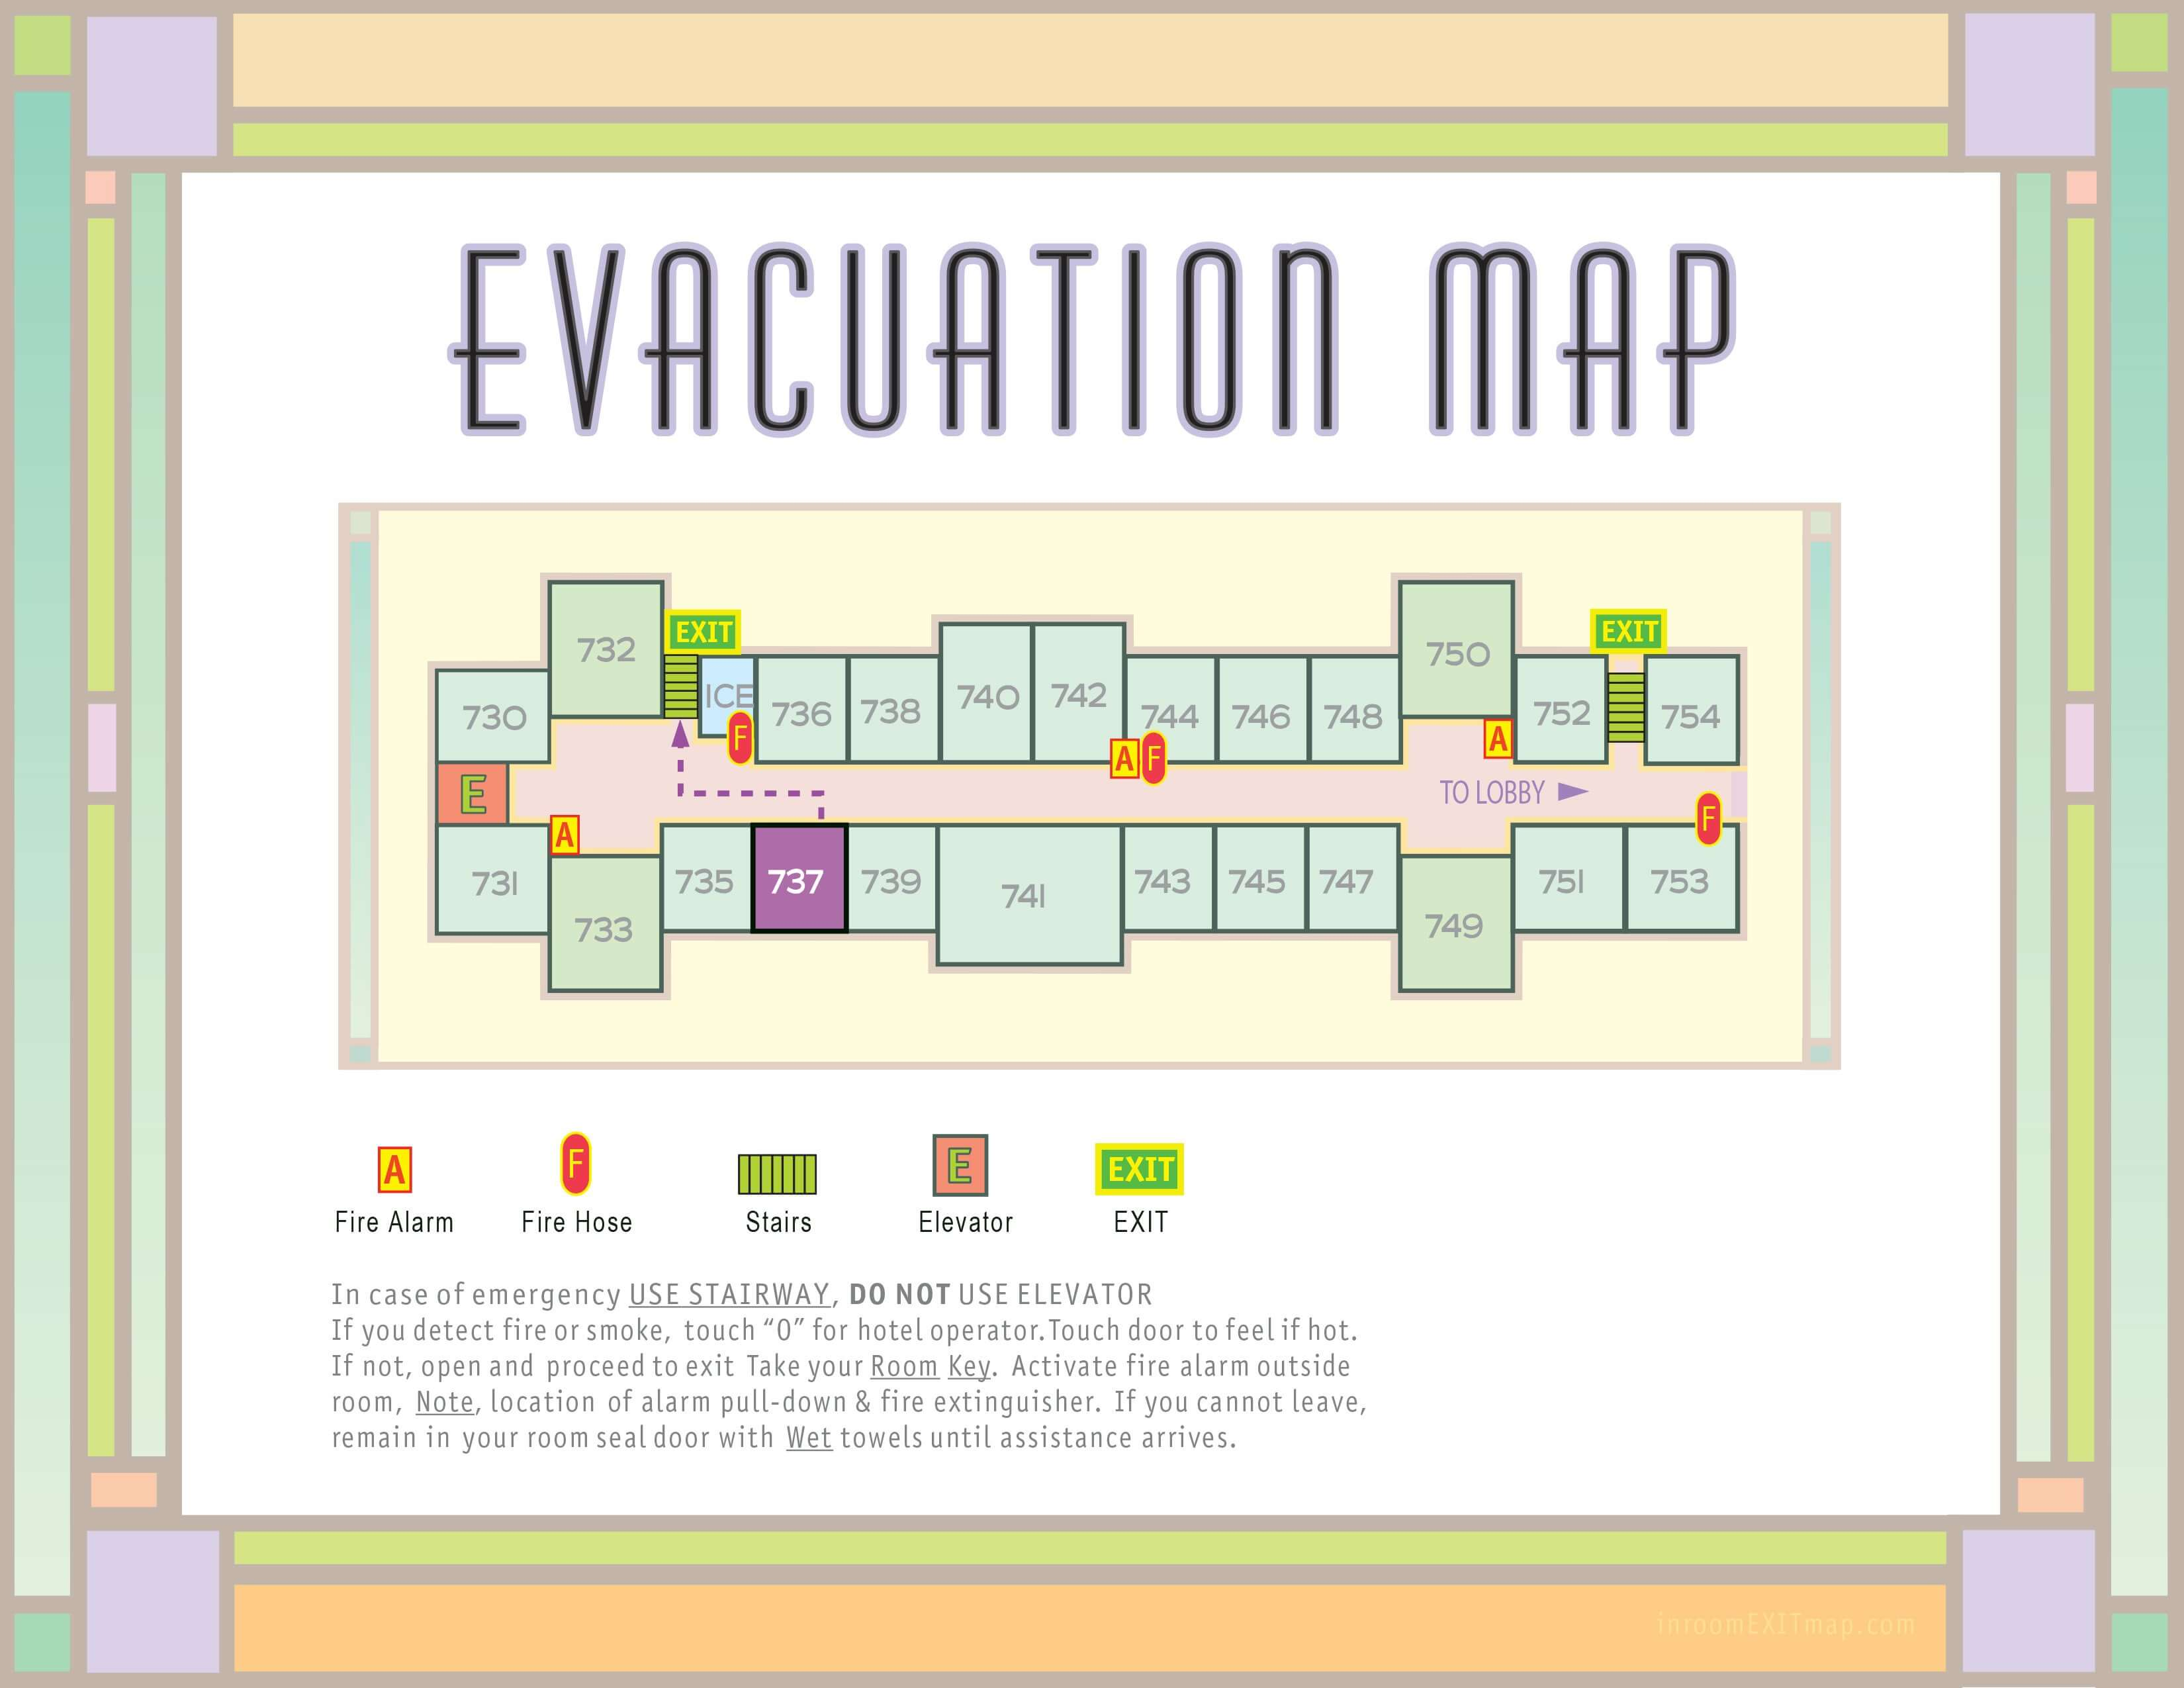 Los_Angeles_737_Evacuation_Map